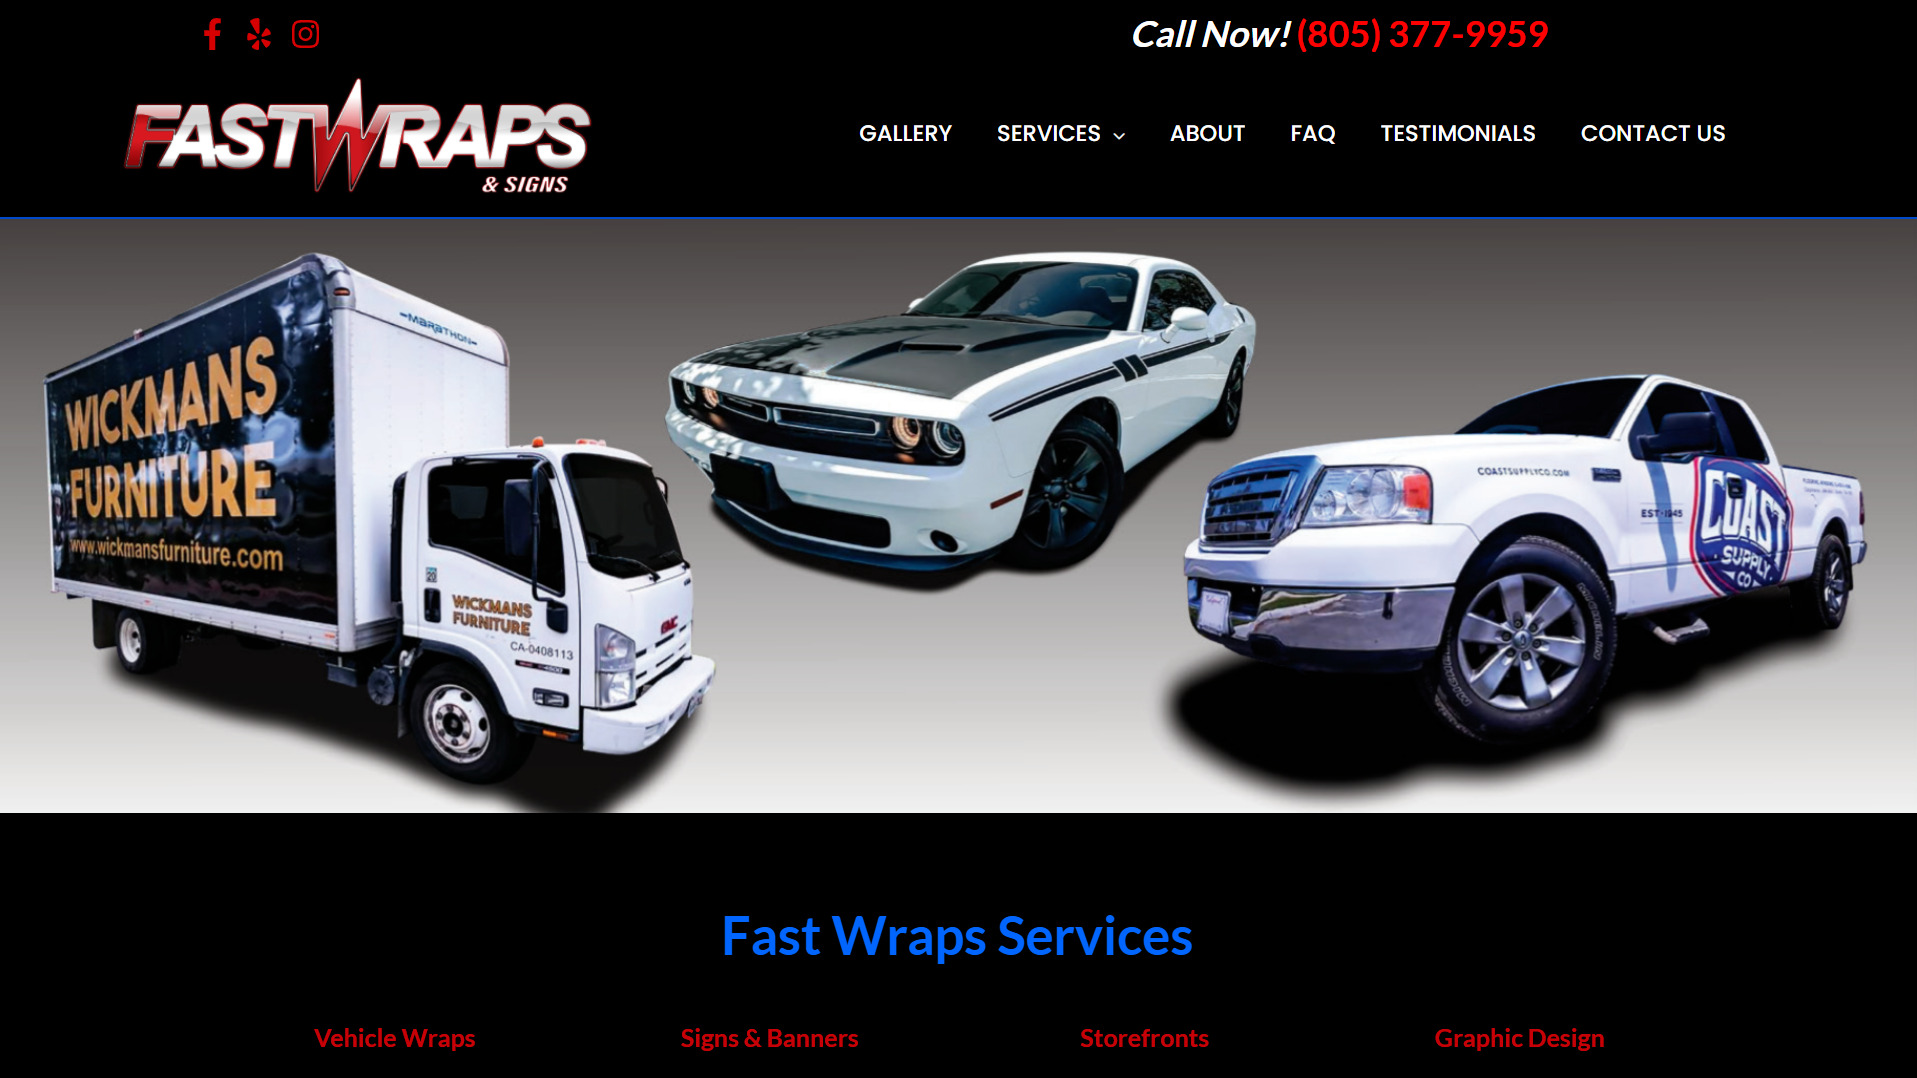 Fast Wraps & Signs